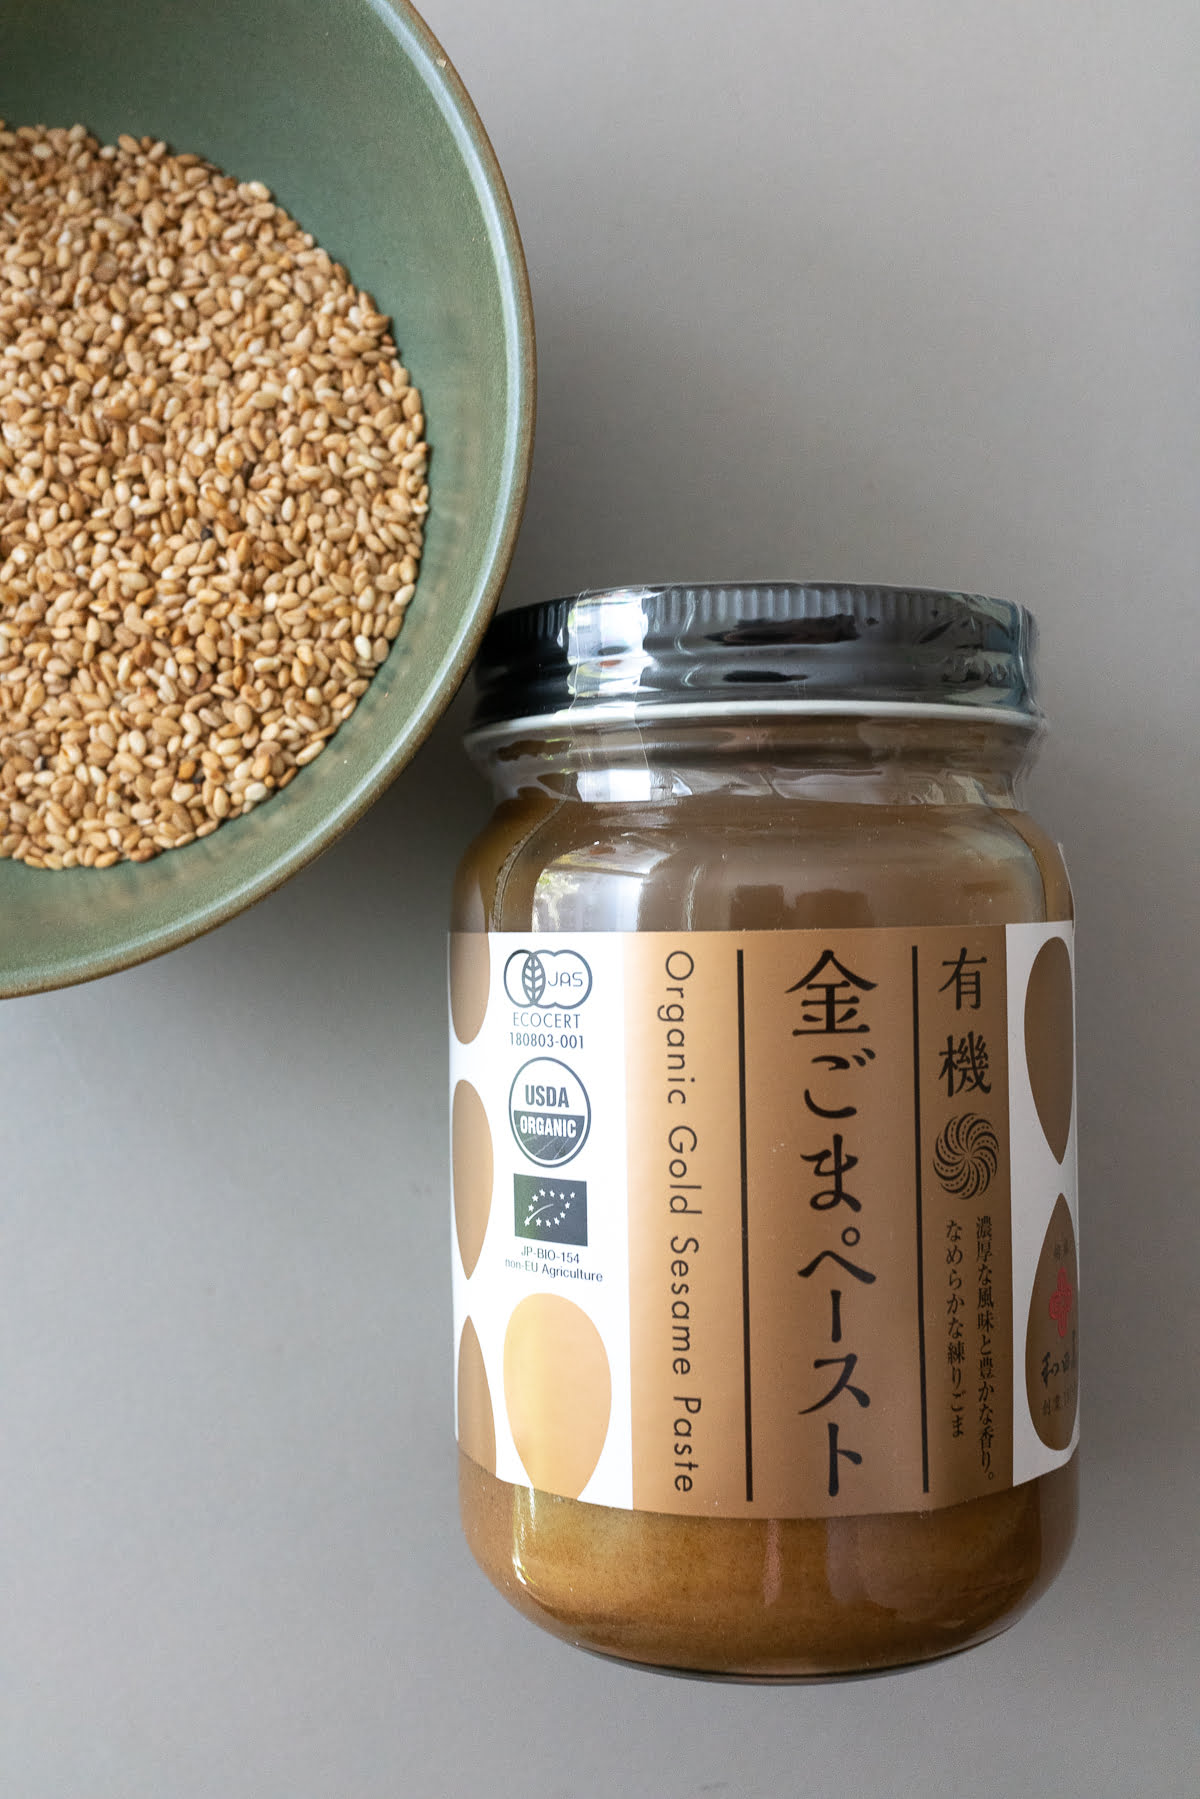 A jar of white sesame paste and a bowl of roasted white sesame seeds.